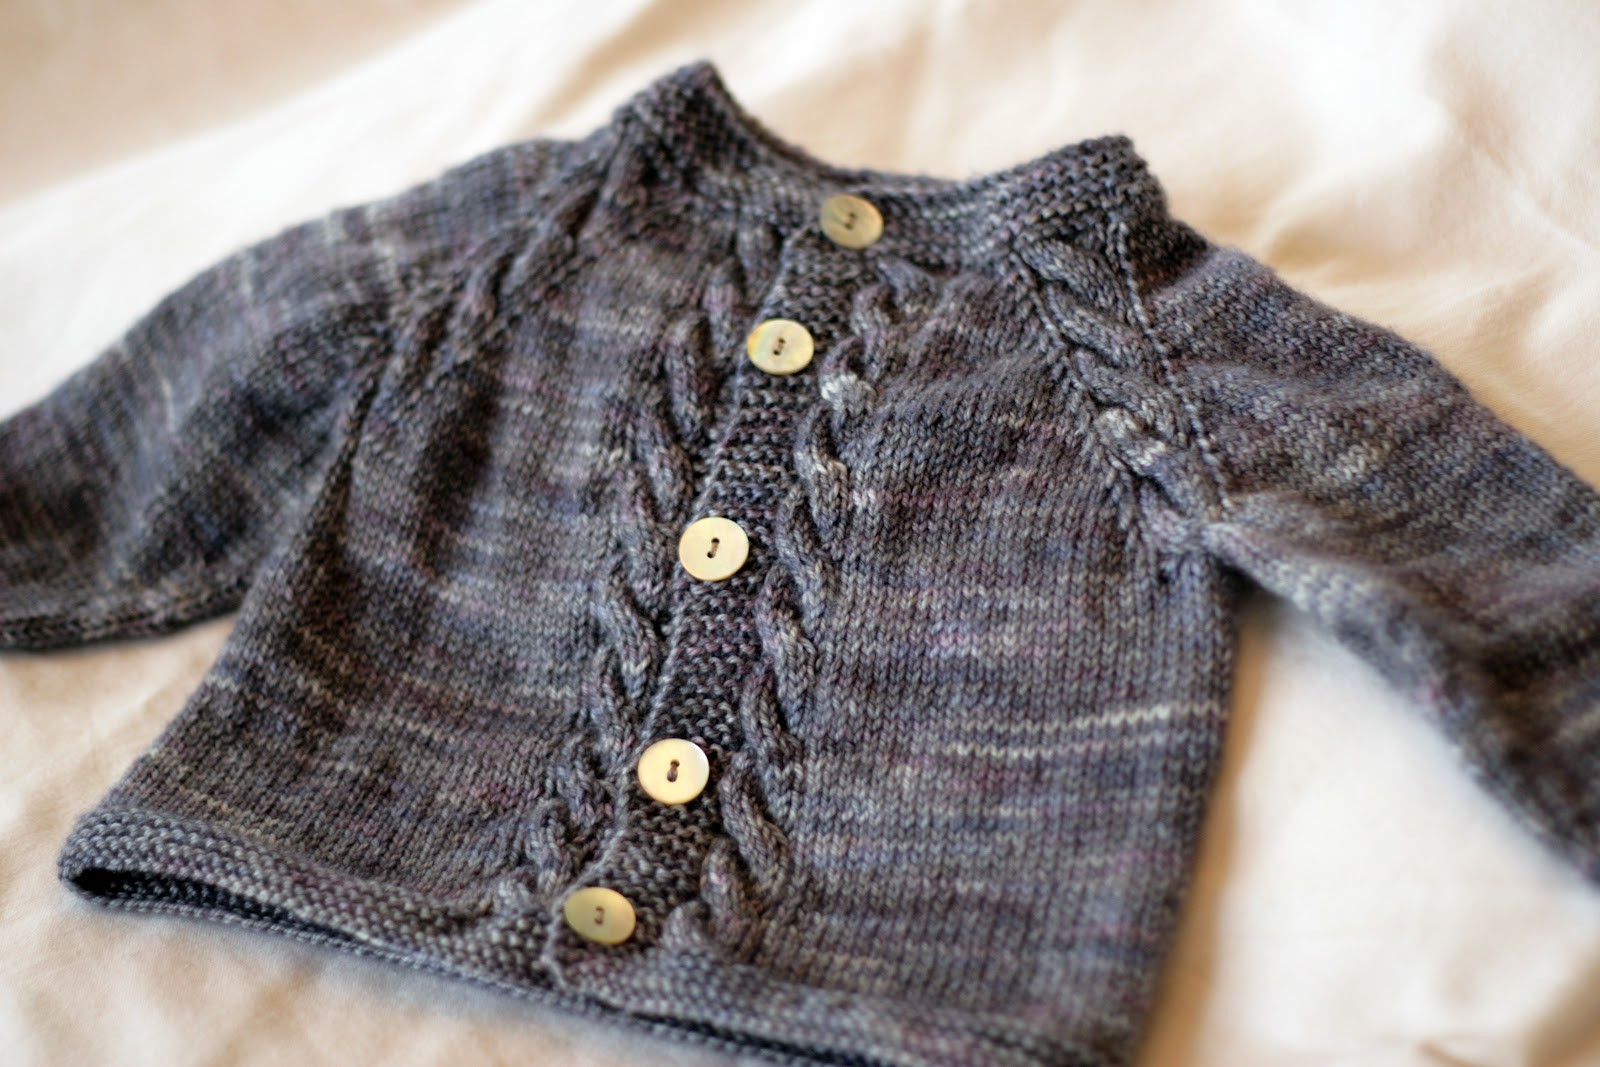 Knitting Patterns for toddlers Fresh Getting Ready for Winter Pretty Knitted Baby Sweater Patterns Of Awesome 49 Images Knitting Patterns for toddlers